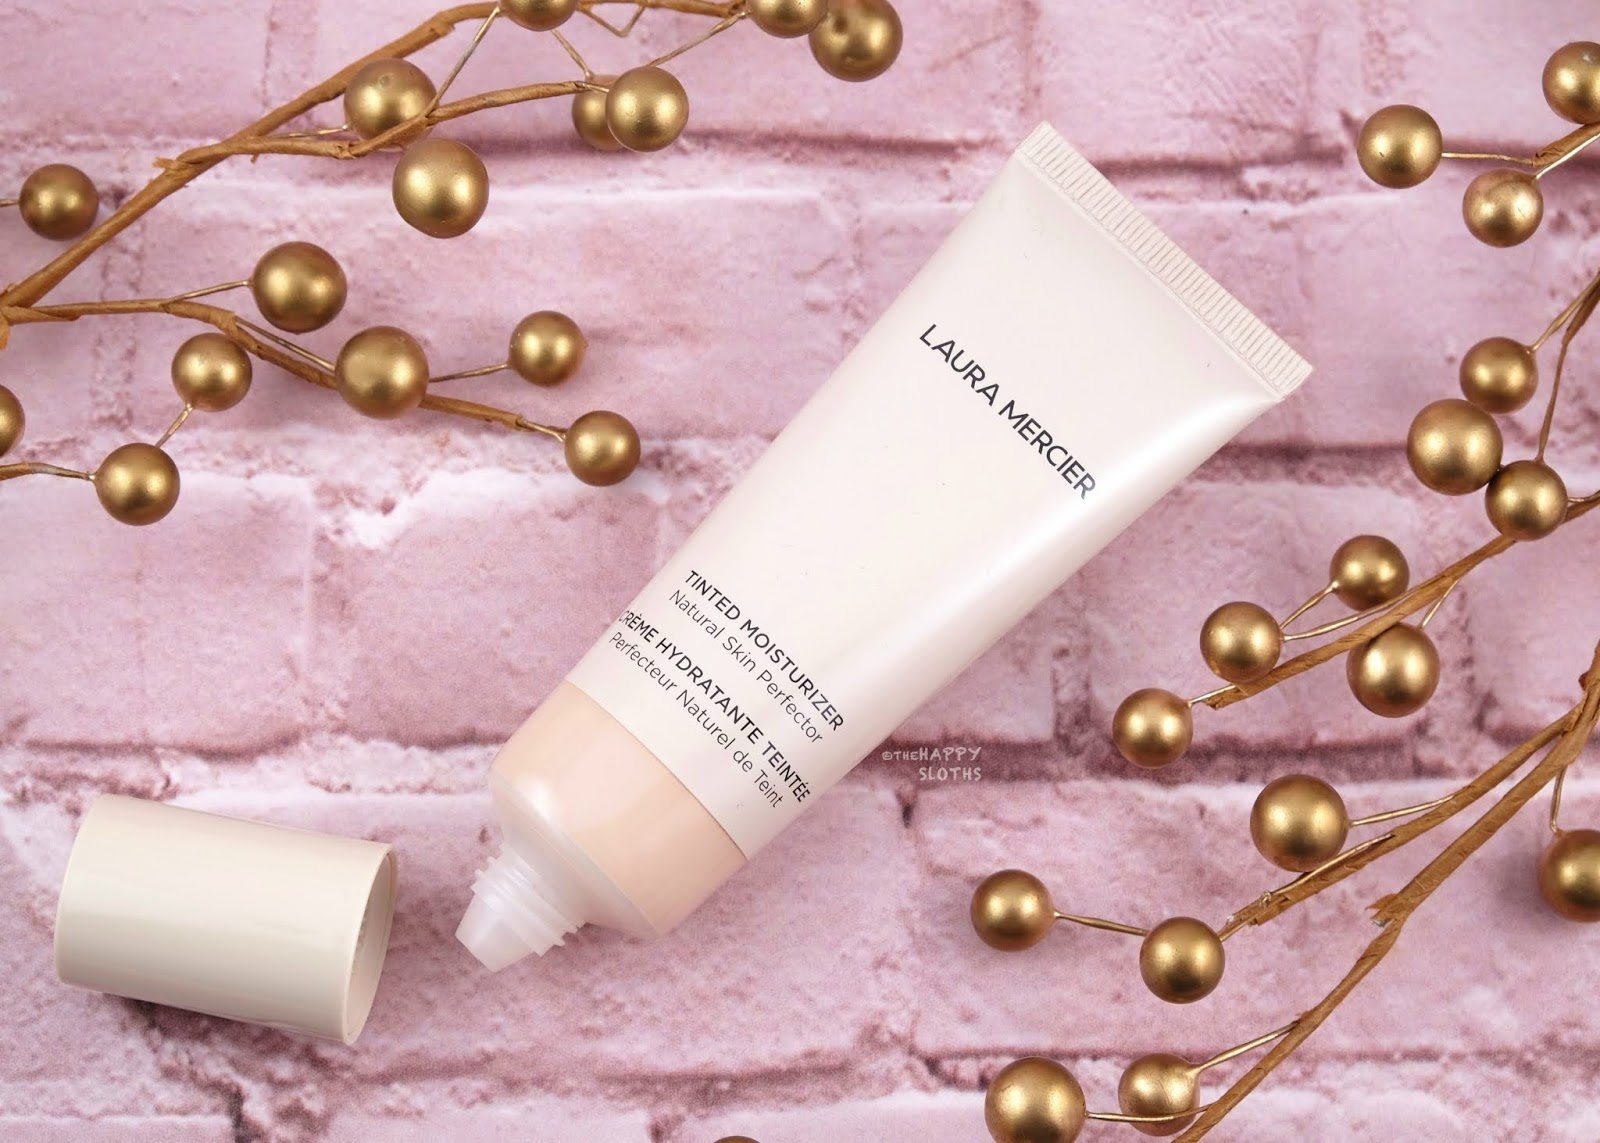 Laura Mercier | Tinted Moisturizer Natural Skin Perfector: Review and Swatches